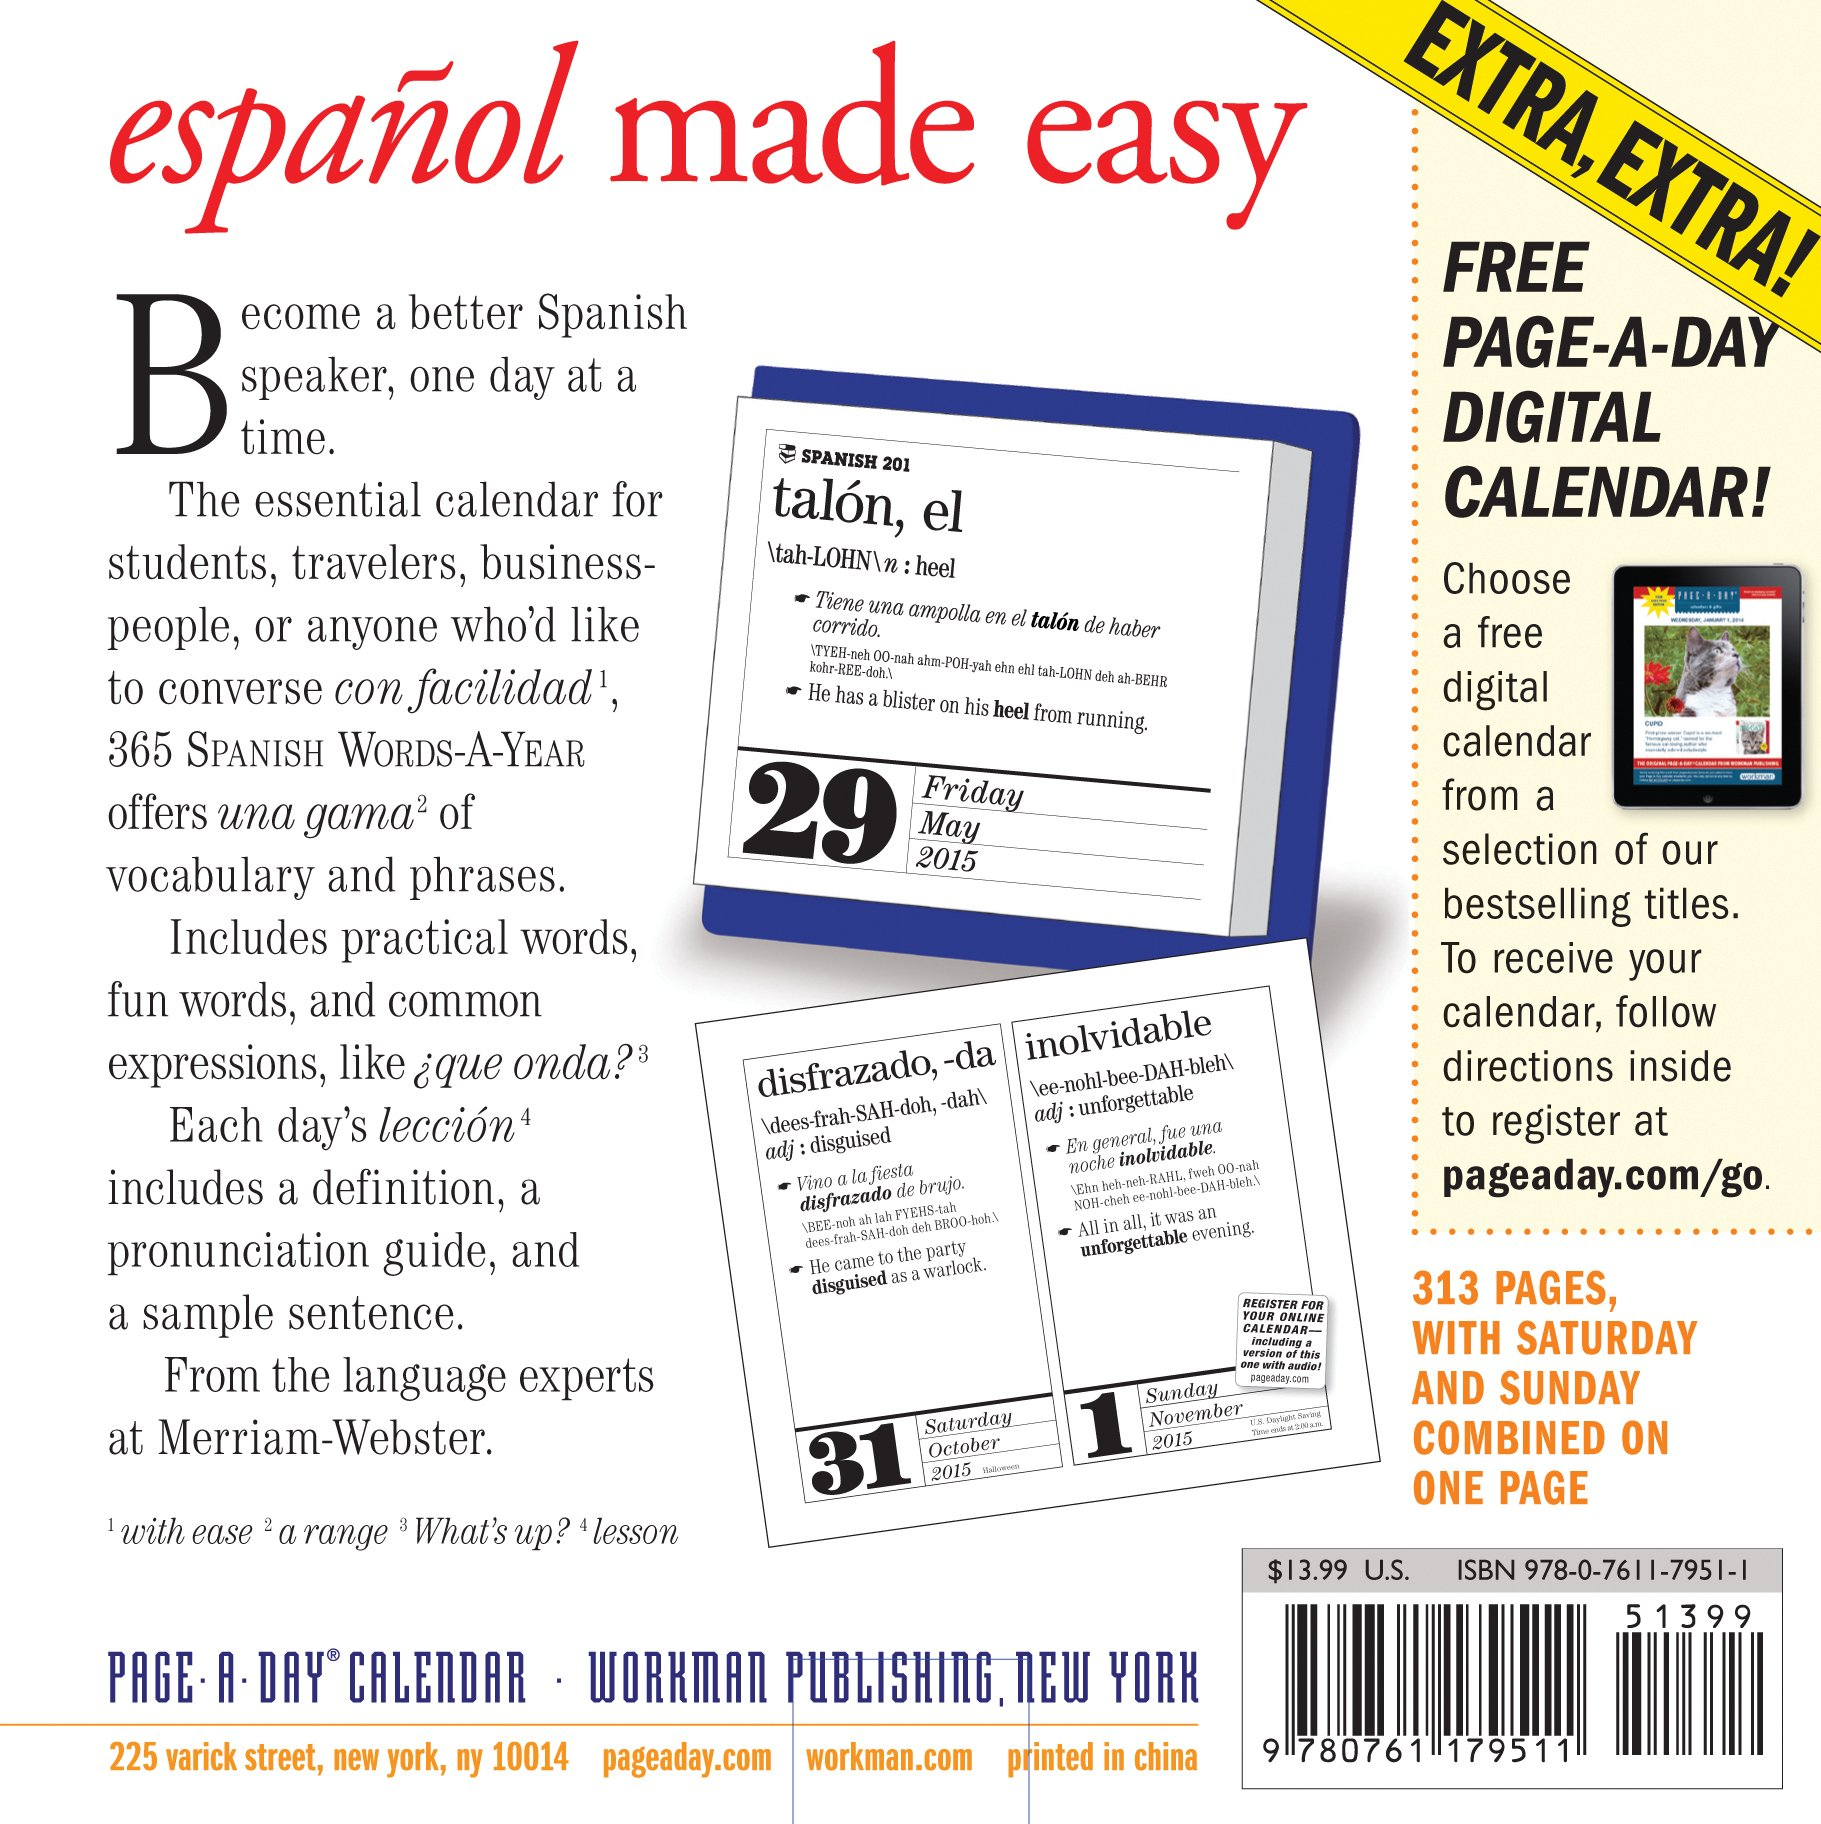 Amazon.com: 365 Spanish Words-A-Year 2015 Page-A-Day Calendar ...